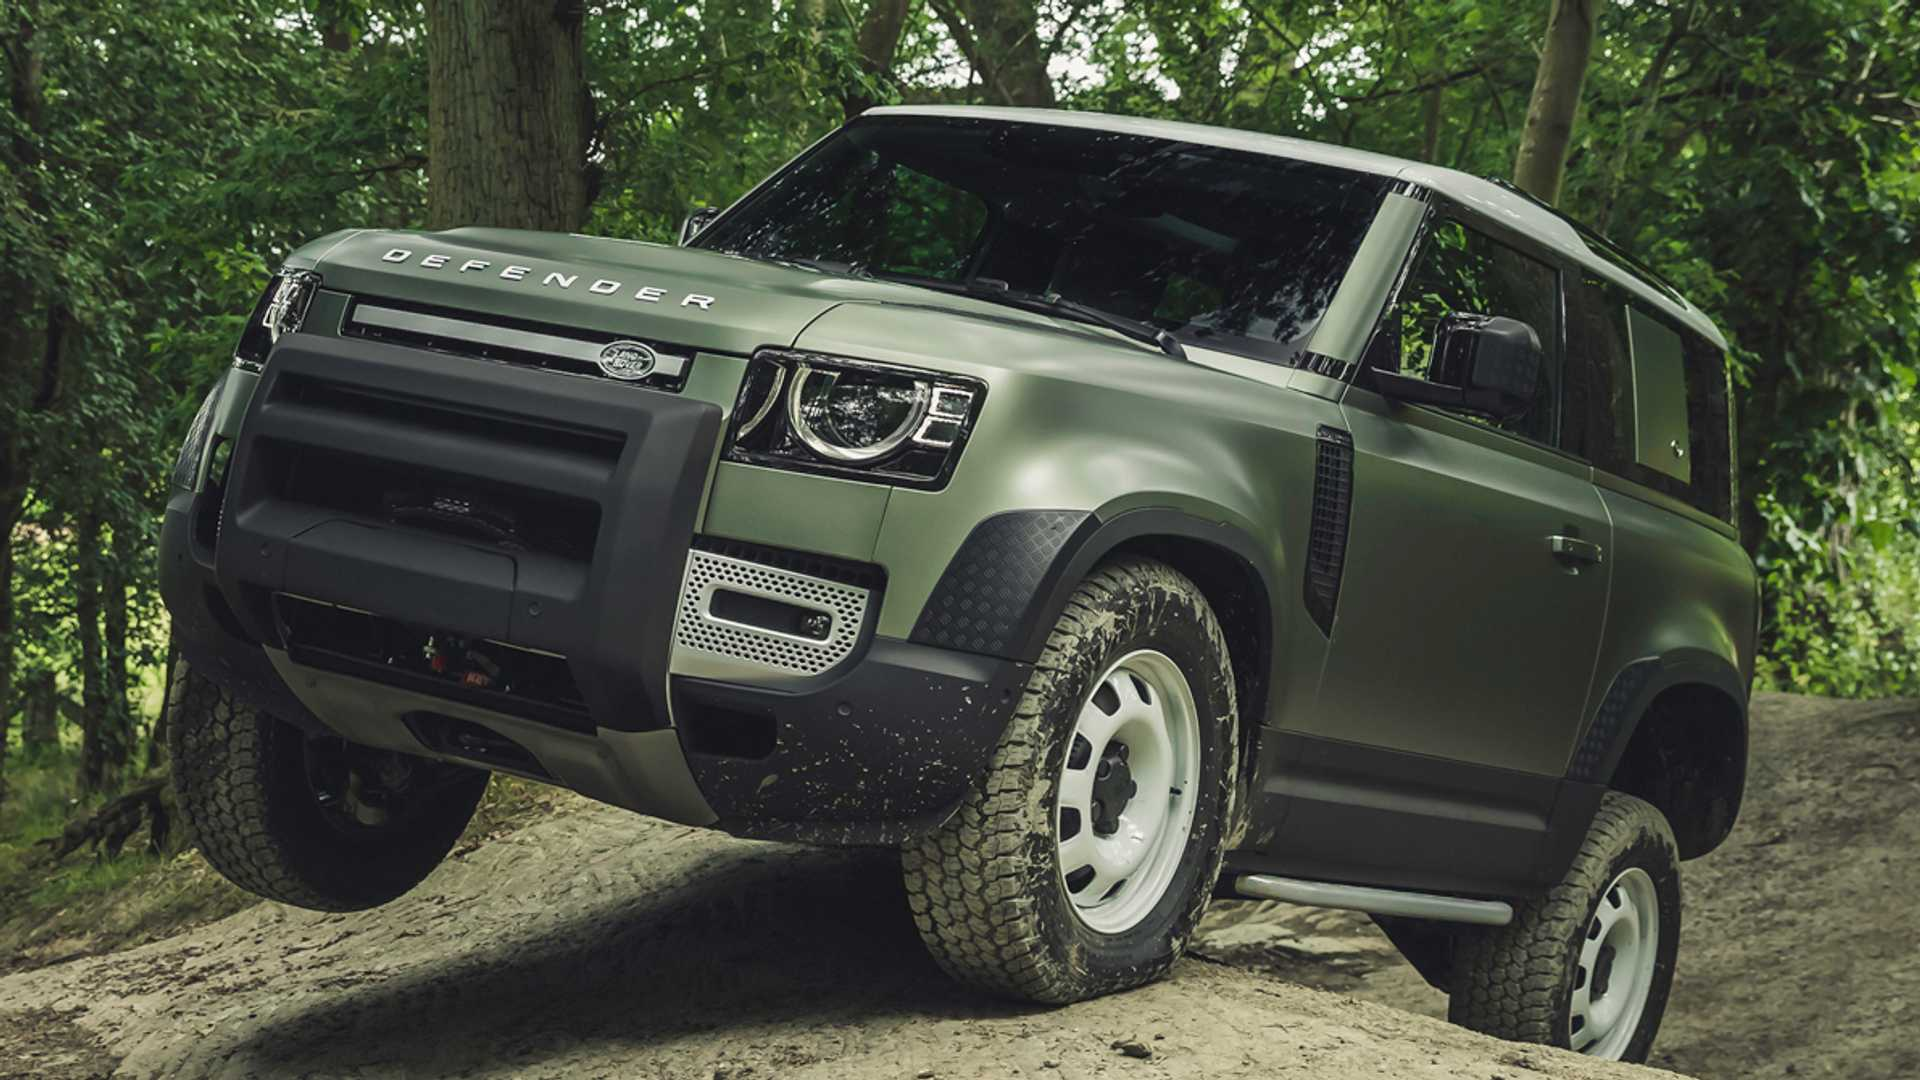 land-rover-defender-2020-off-road-capability.jpg